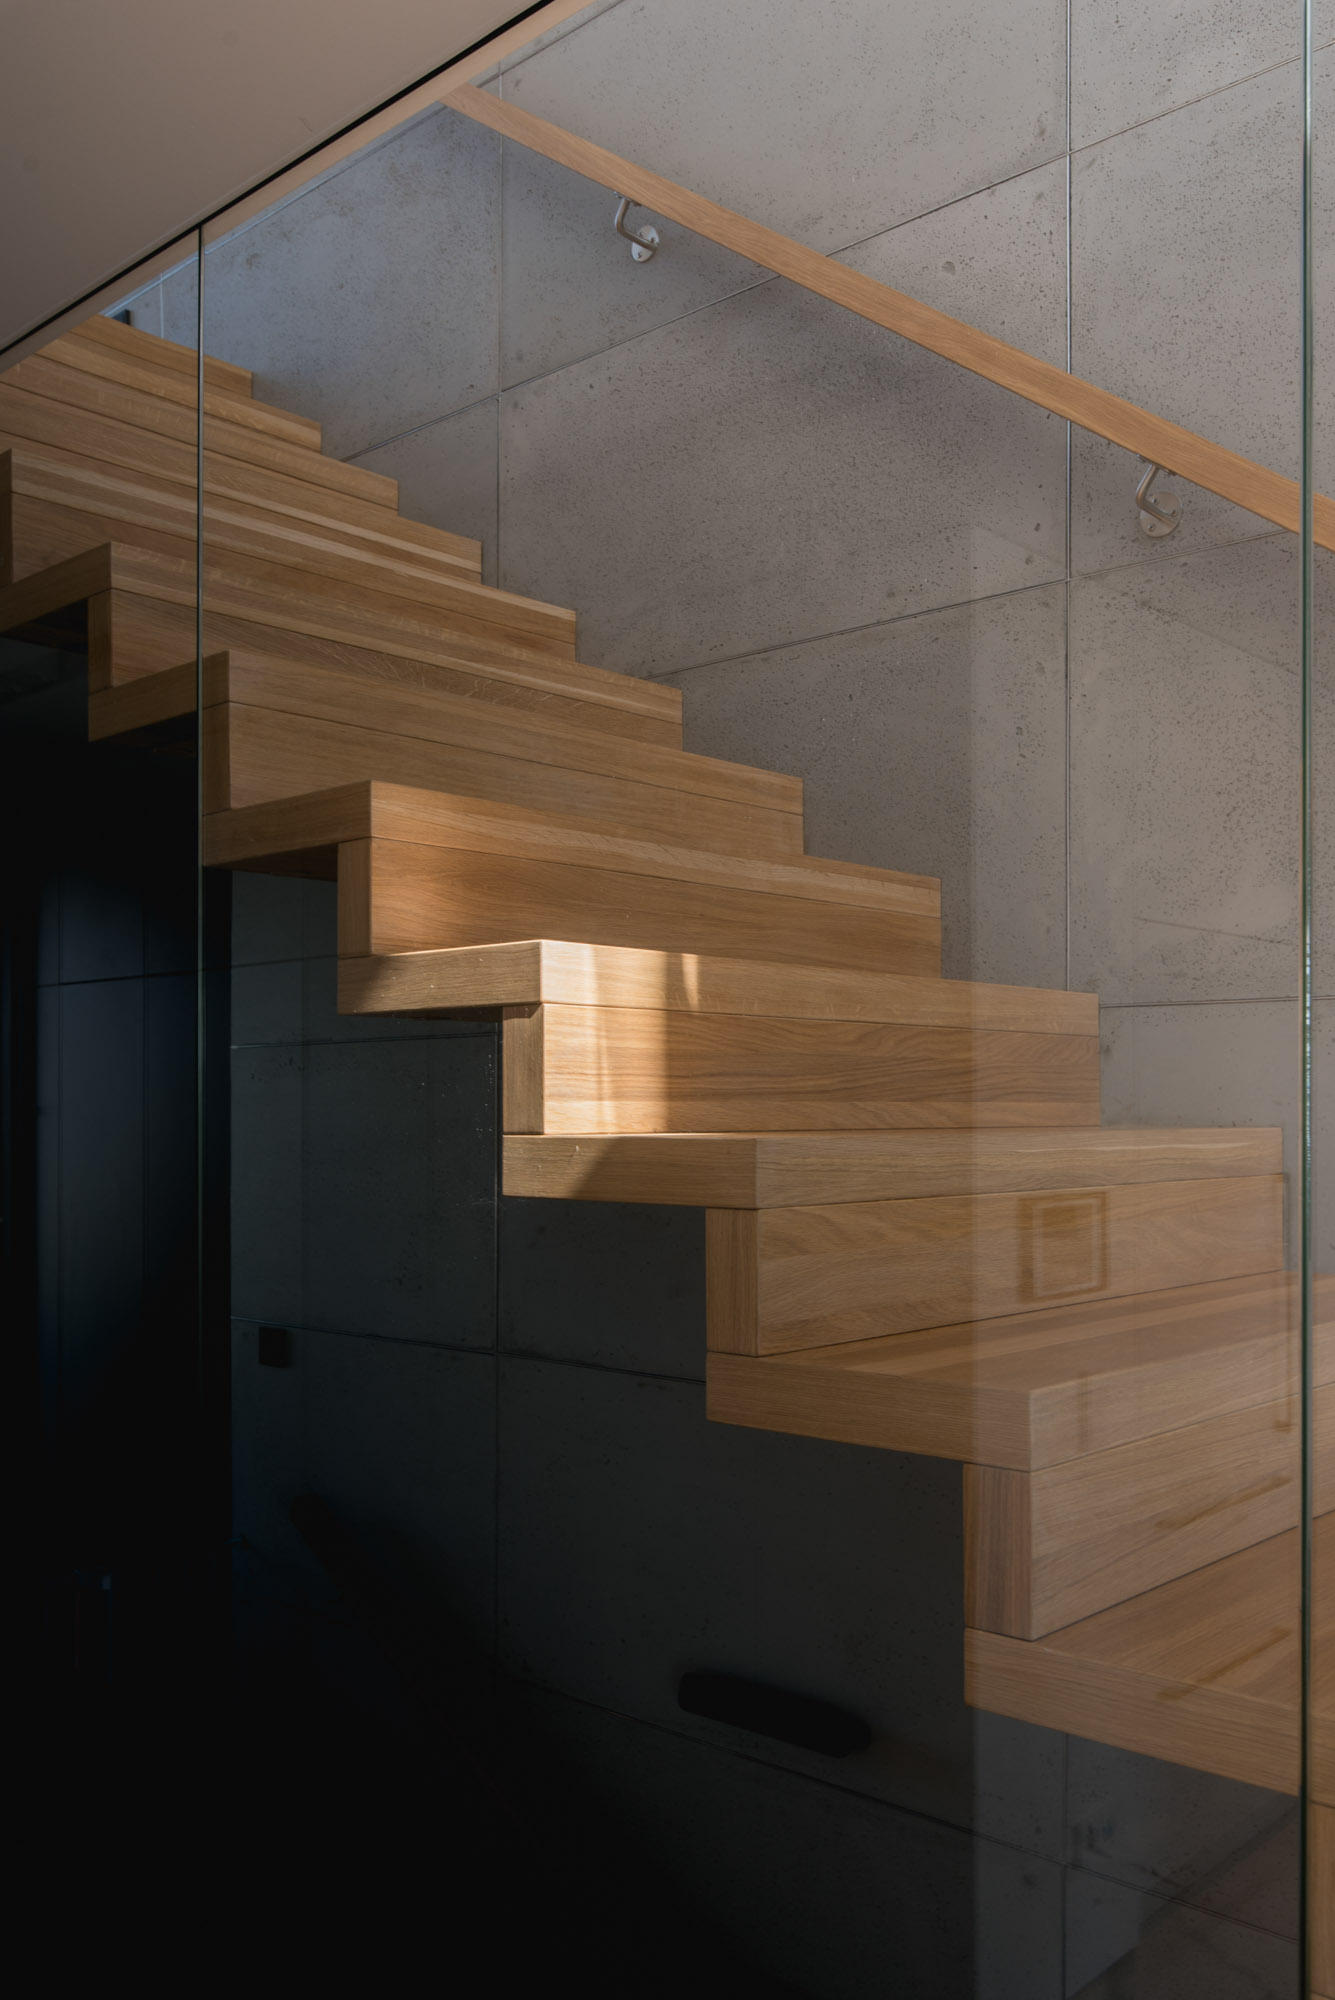 Wood stairs behind a glass wall lead from the social areas of this modern house to the upper floor.